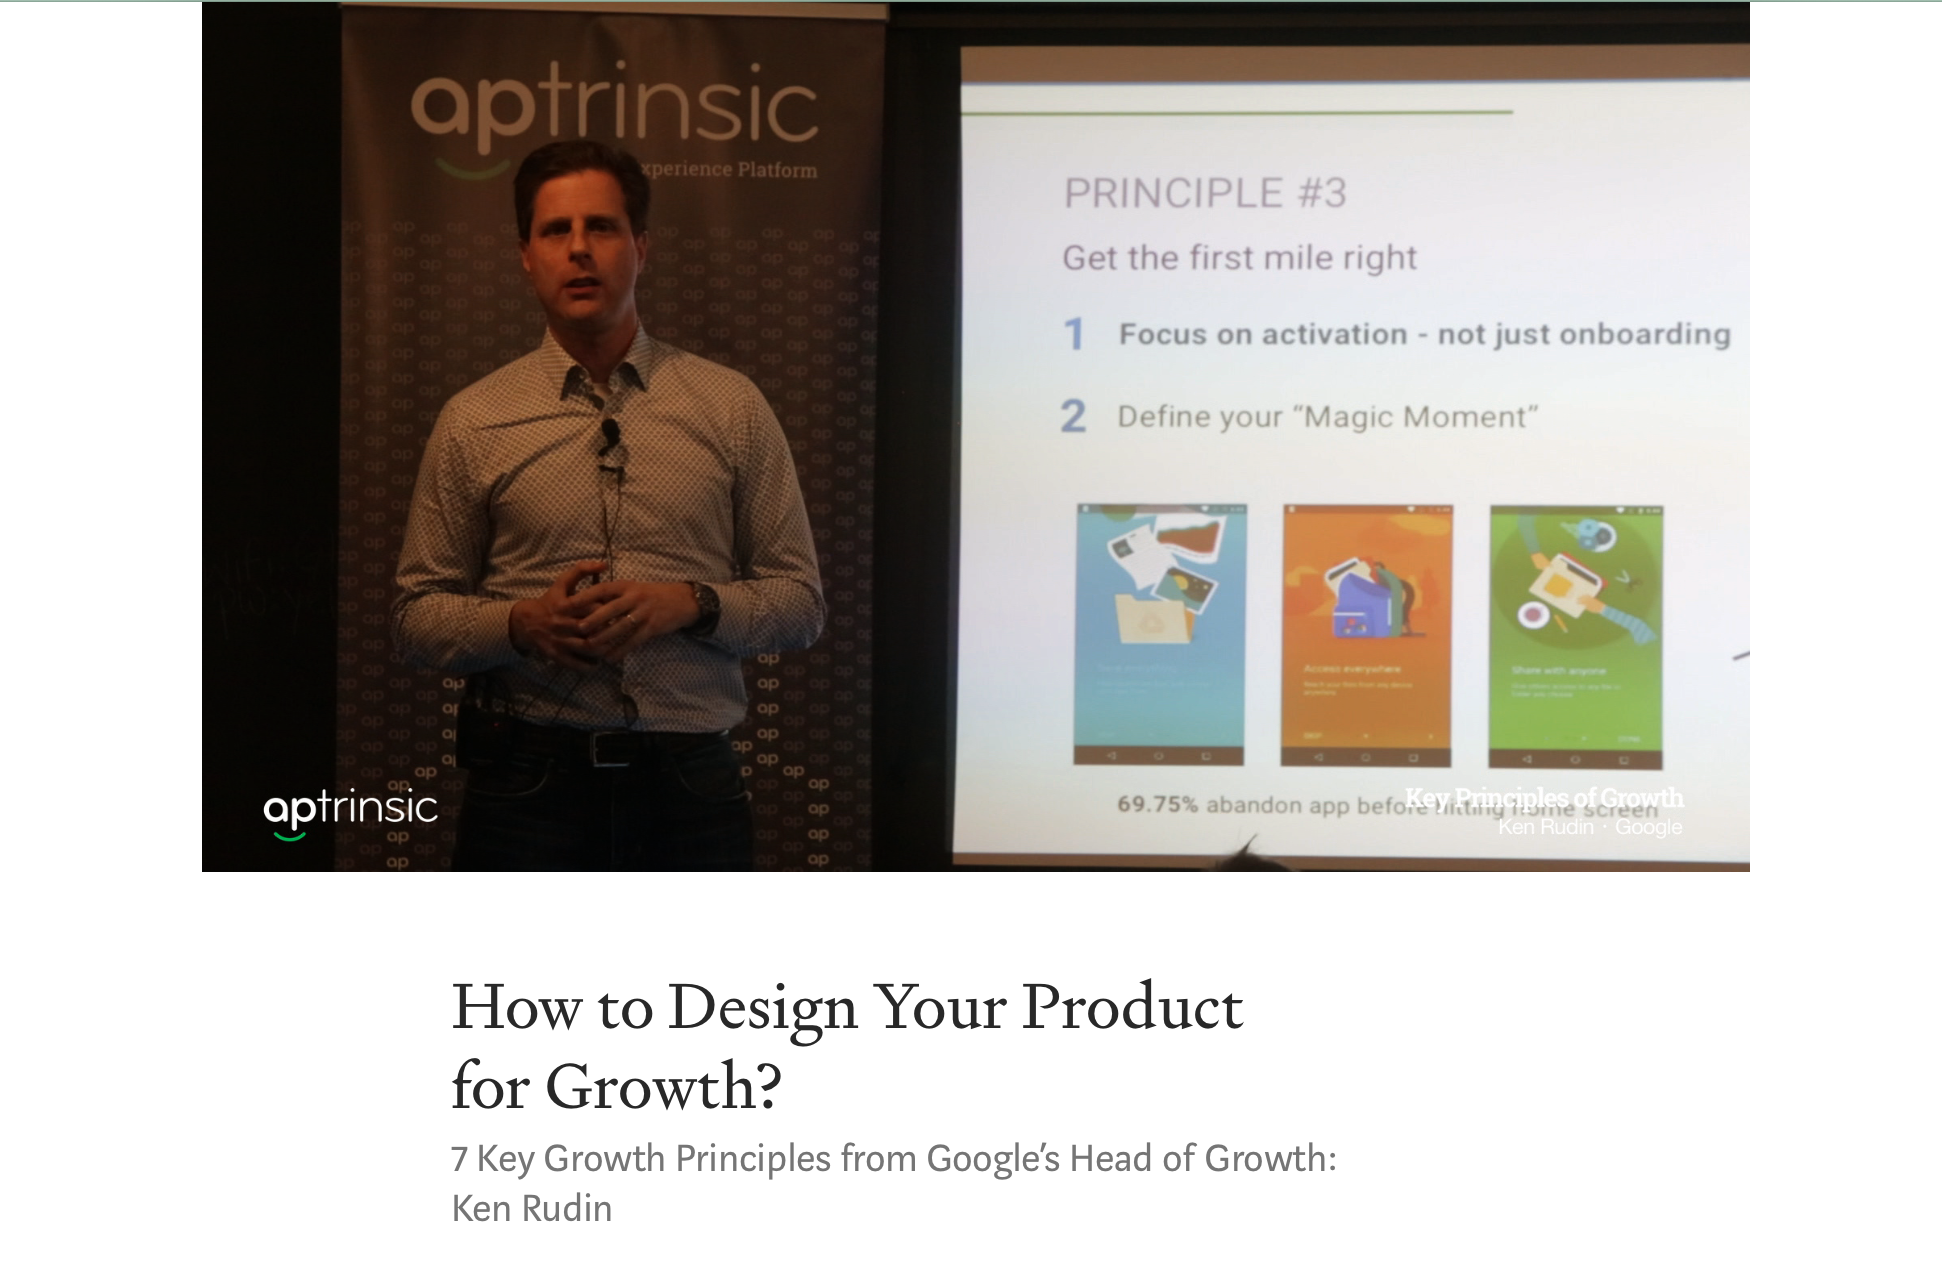 How to Design Your Product for Growth? - Blog post by Aptrinsic